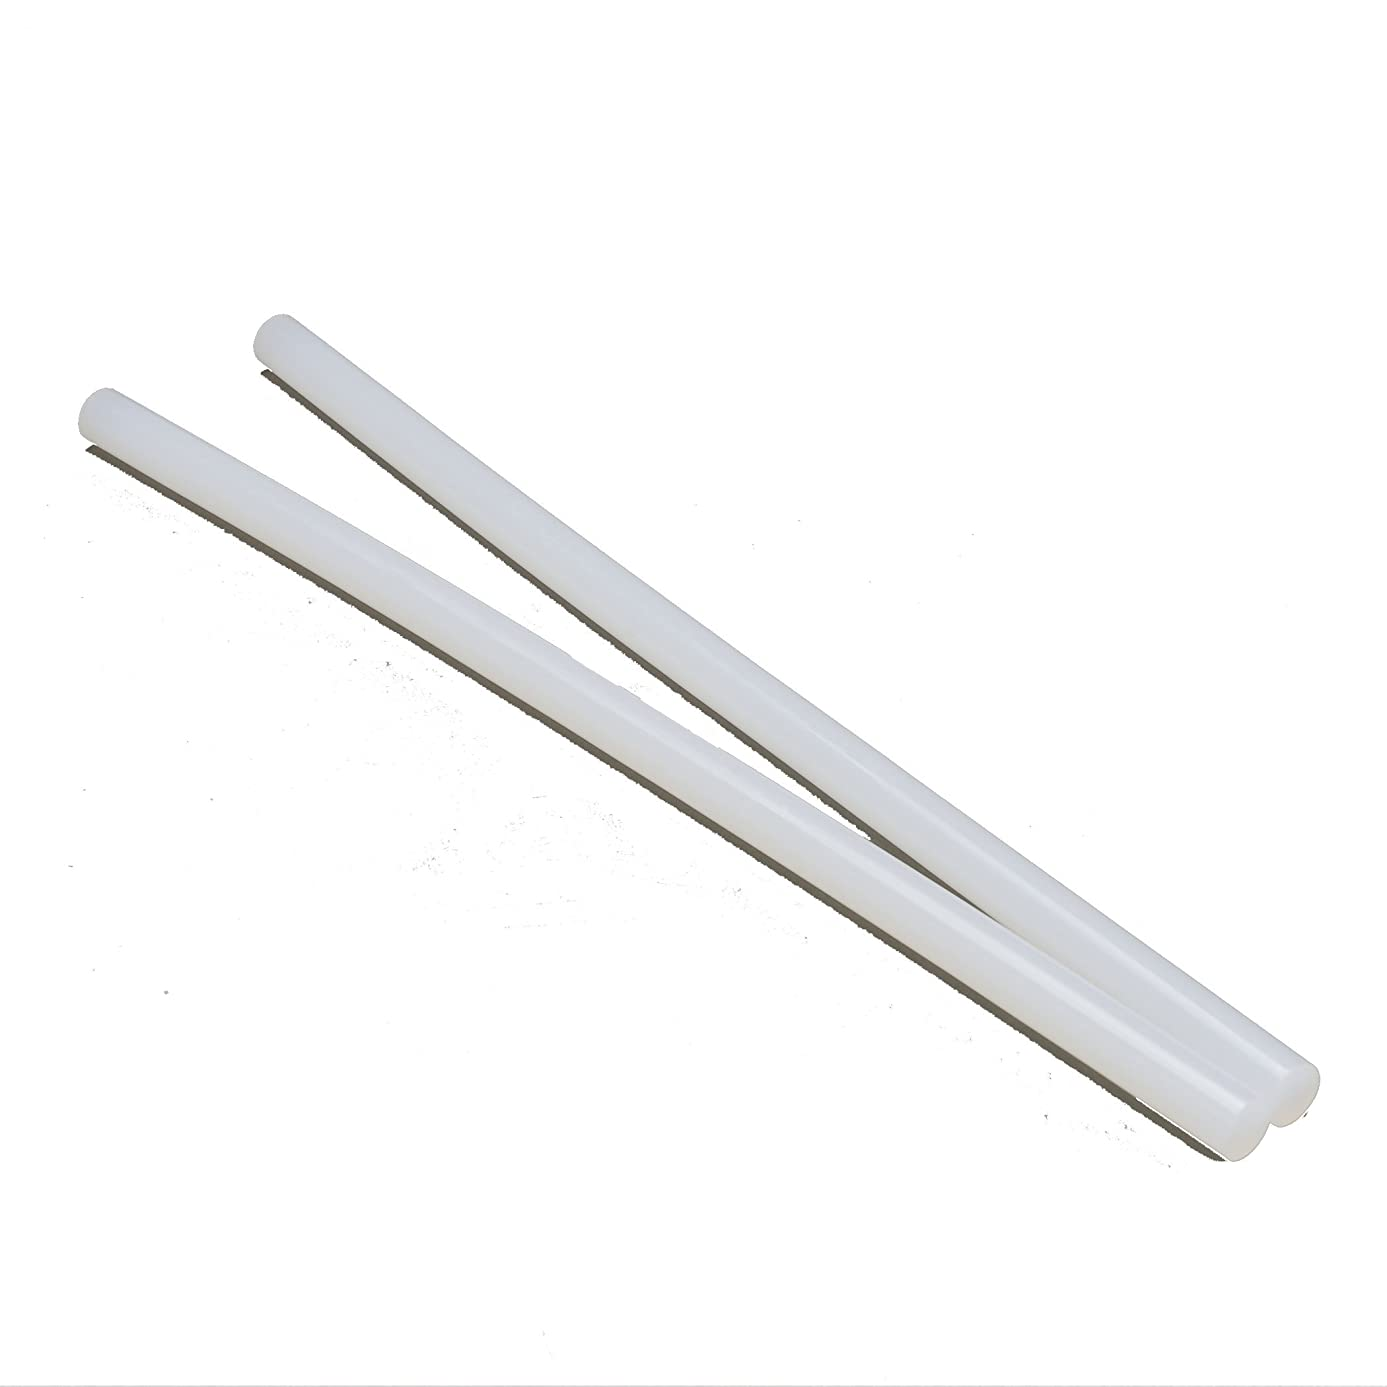 3M Hot Melt Adhesive 3792 LM AE Clear.45 in x 12 in Stick, 11 lb (Pack of 11)